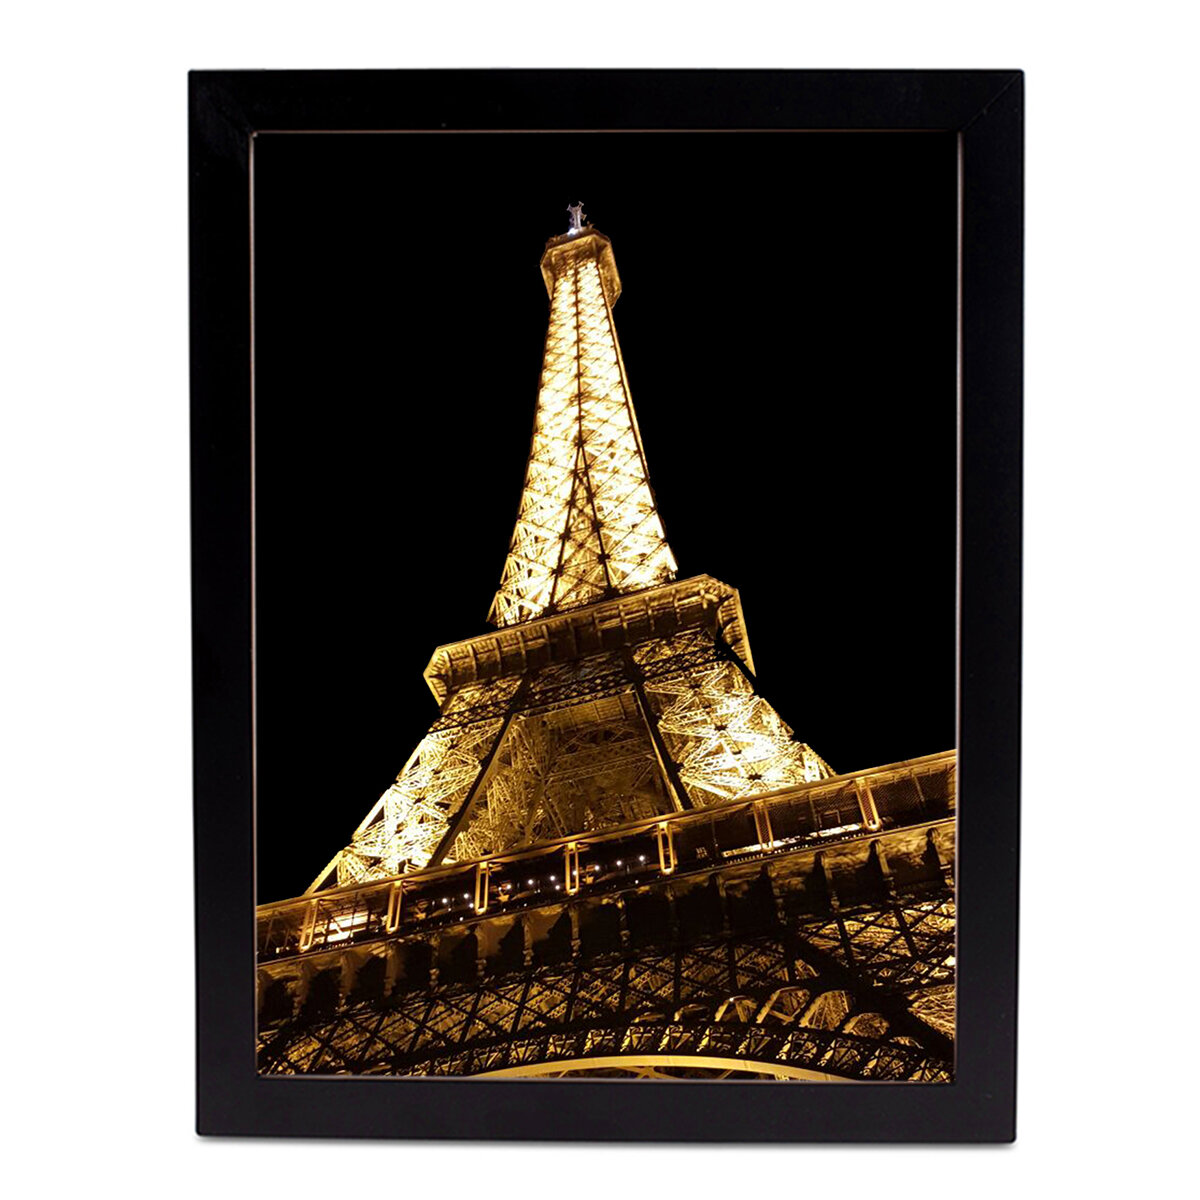 Safiyajamila Holiday Treasures Eiffel Tower Framed Photographic Print Wayfair